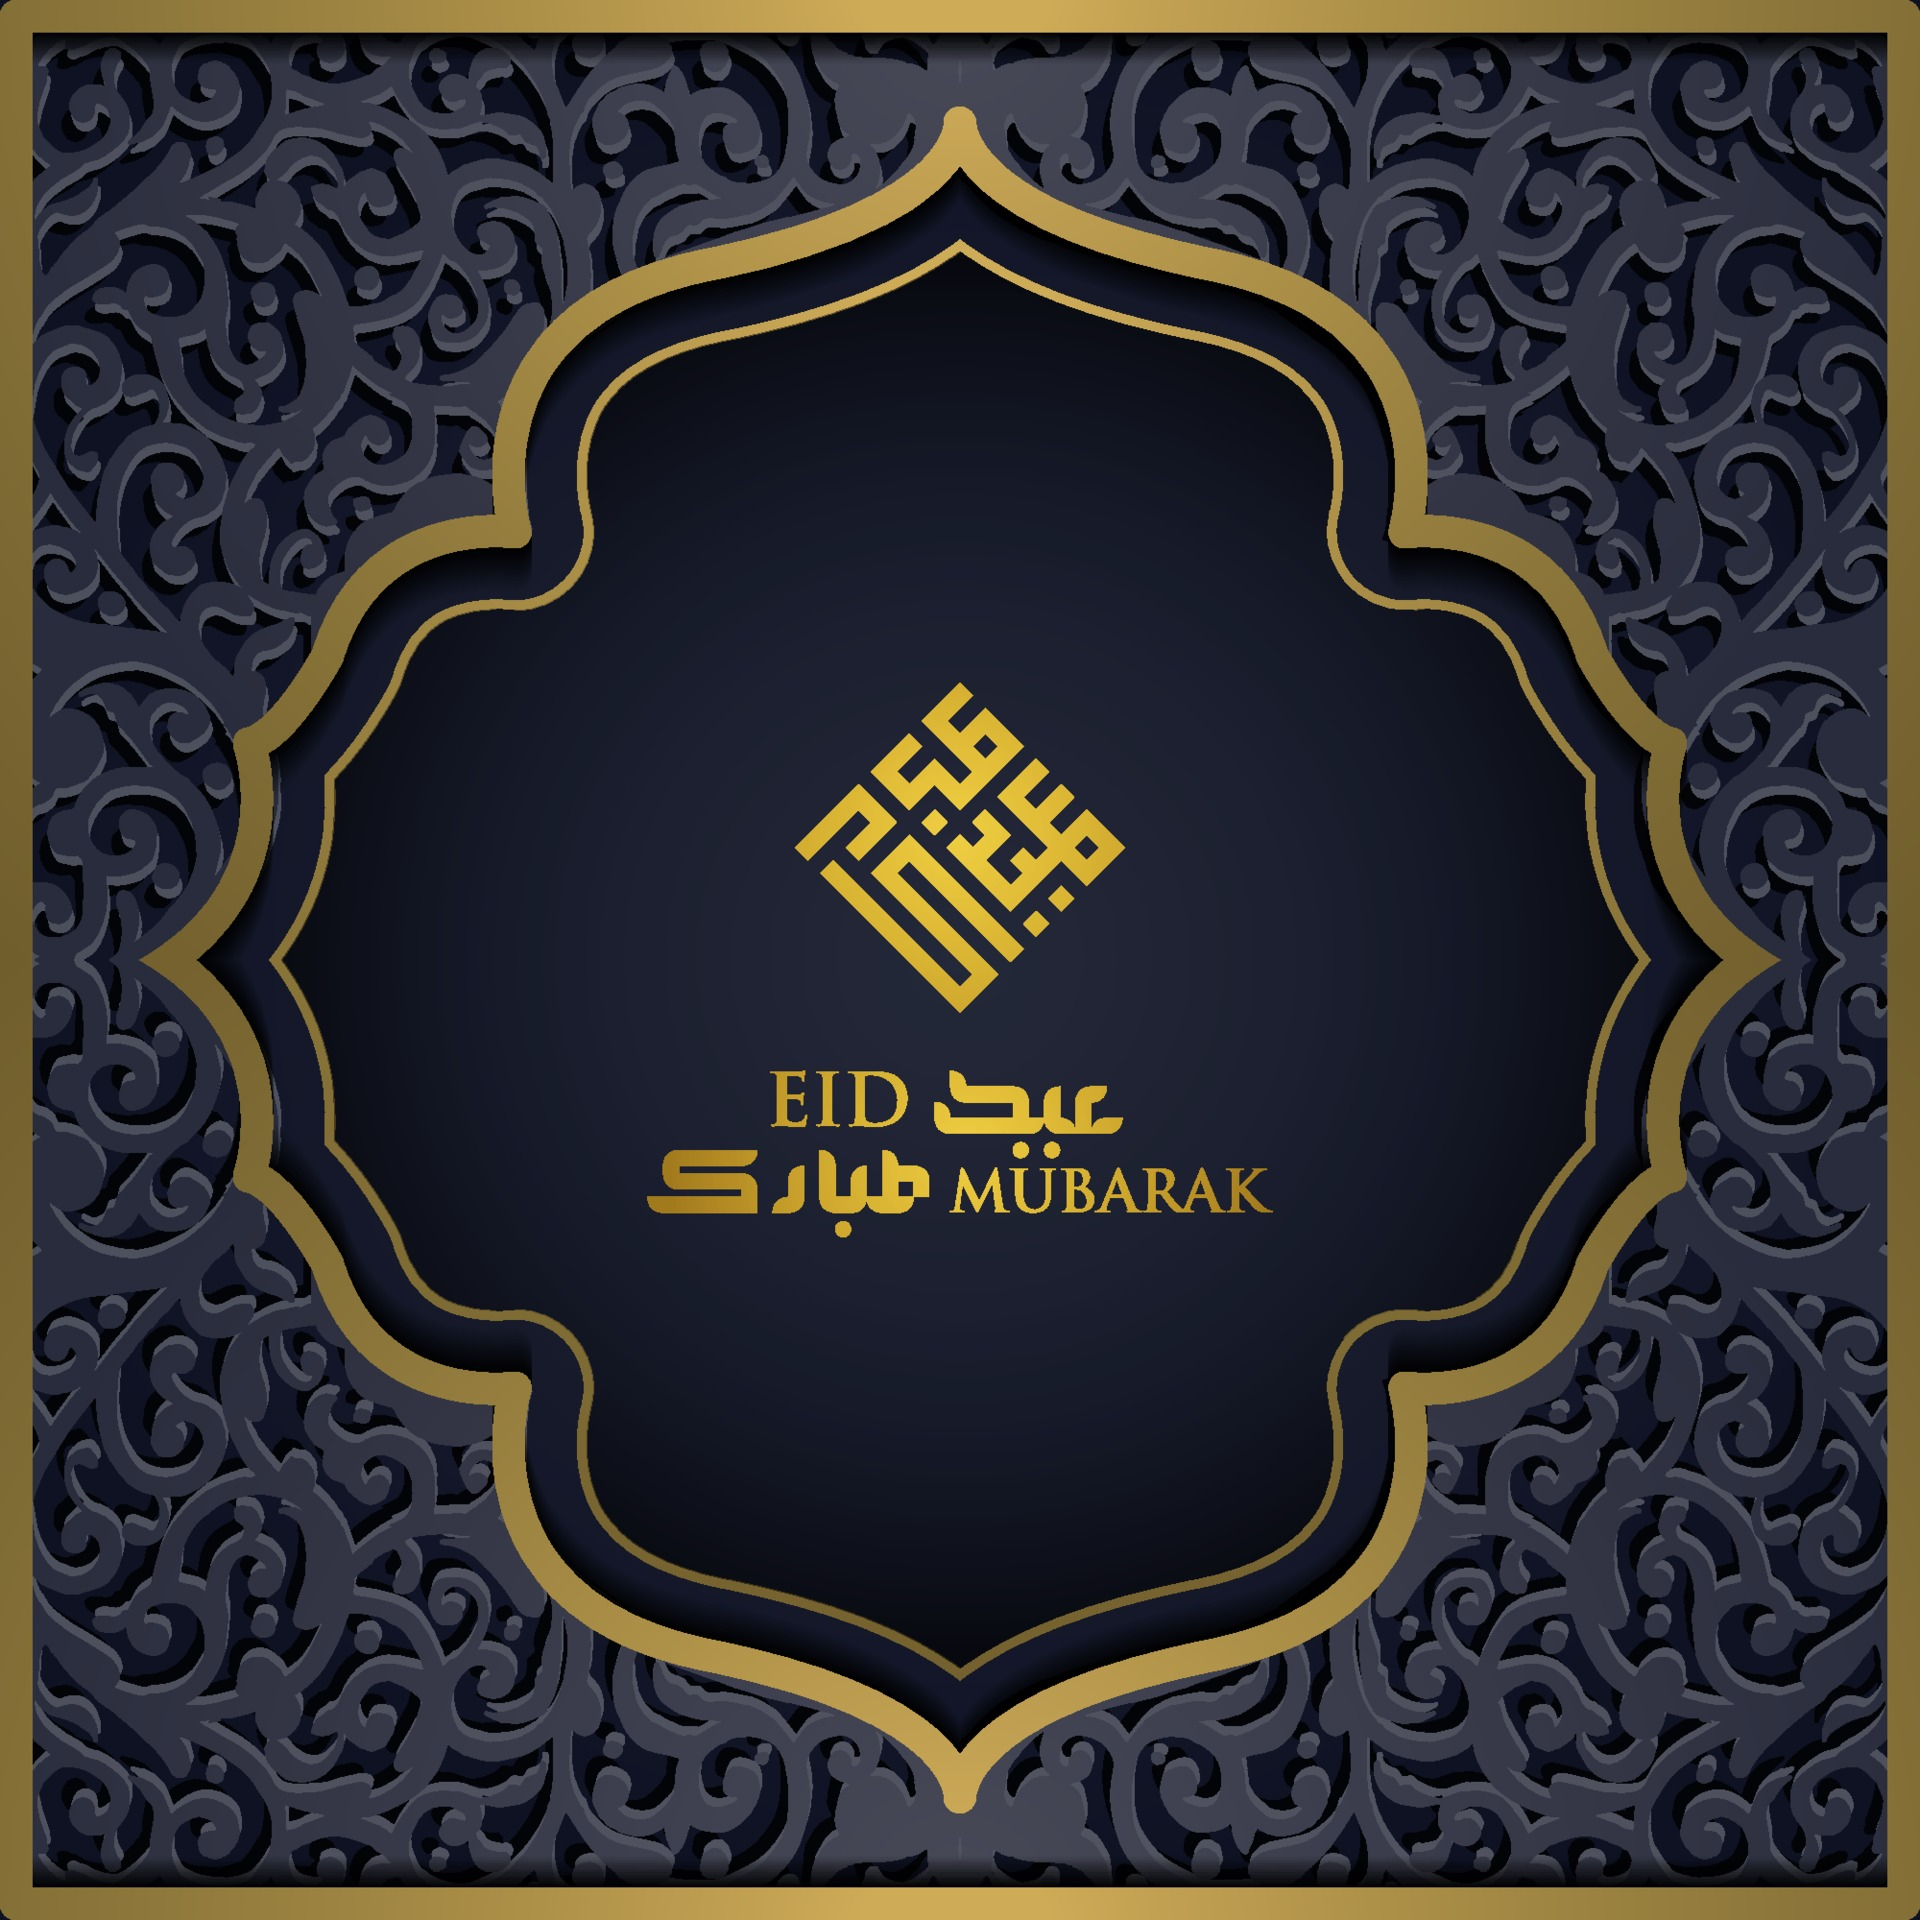 Eid Mubarak Greeting Background Islamic Pattern Vector Design With Beautiful Arabic Calligraphy Translation Of Text Blessed Festival 2145167 Vector Art At Vecteezy